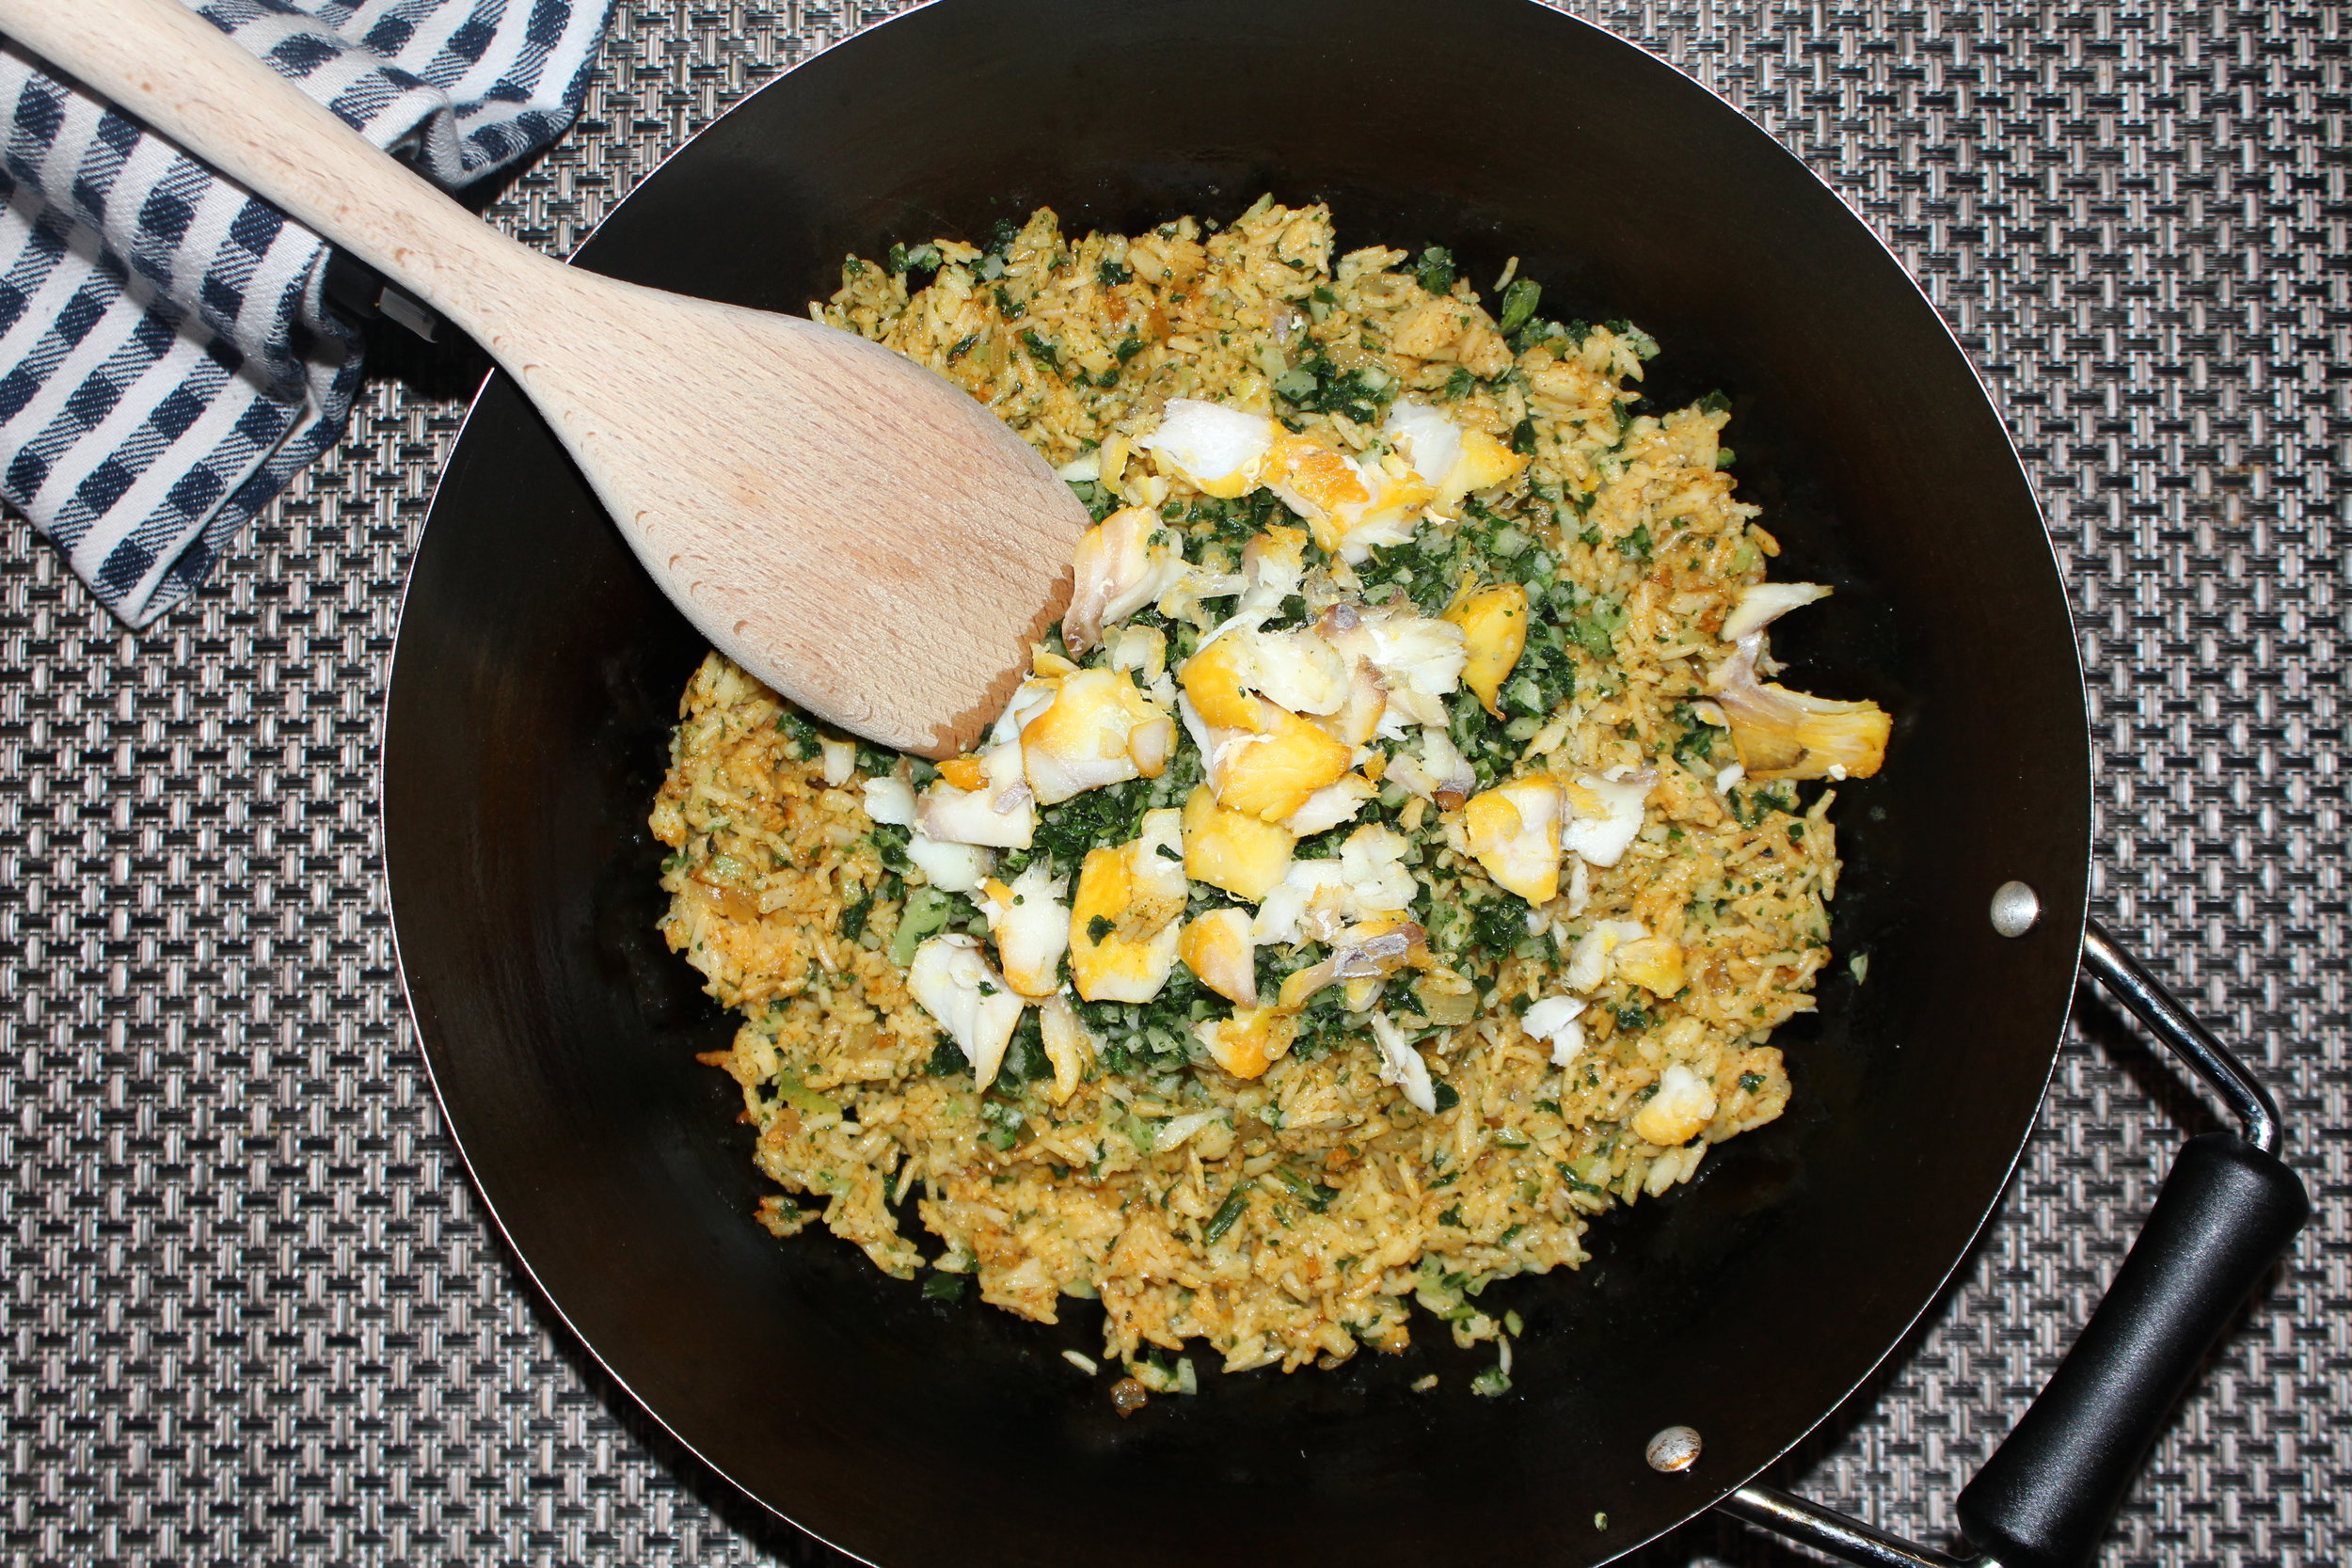 ASIAN SPICE FUSION KEDGEREE WITH SMOKED HADOCK